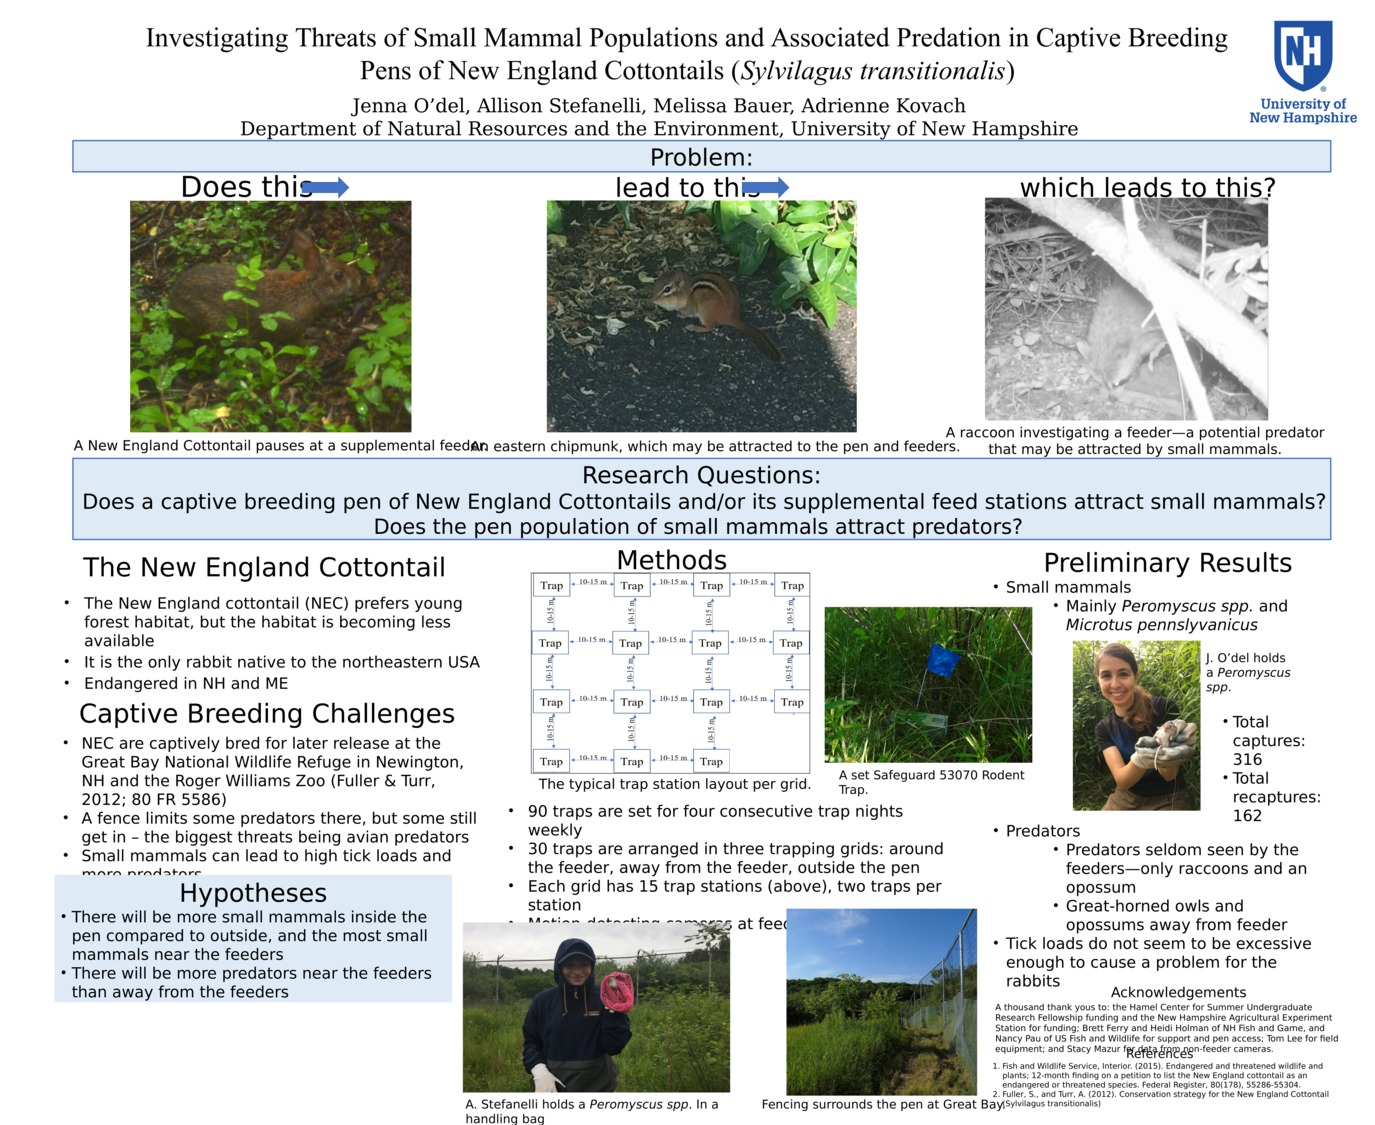 Investigating Threats Of Small Mammal Populations... by akovach